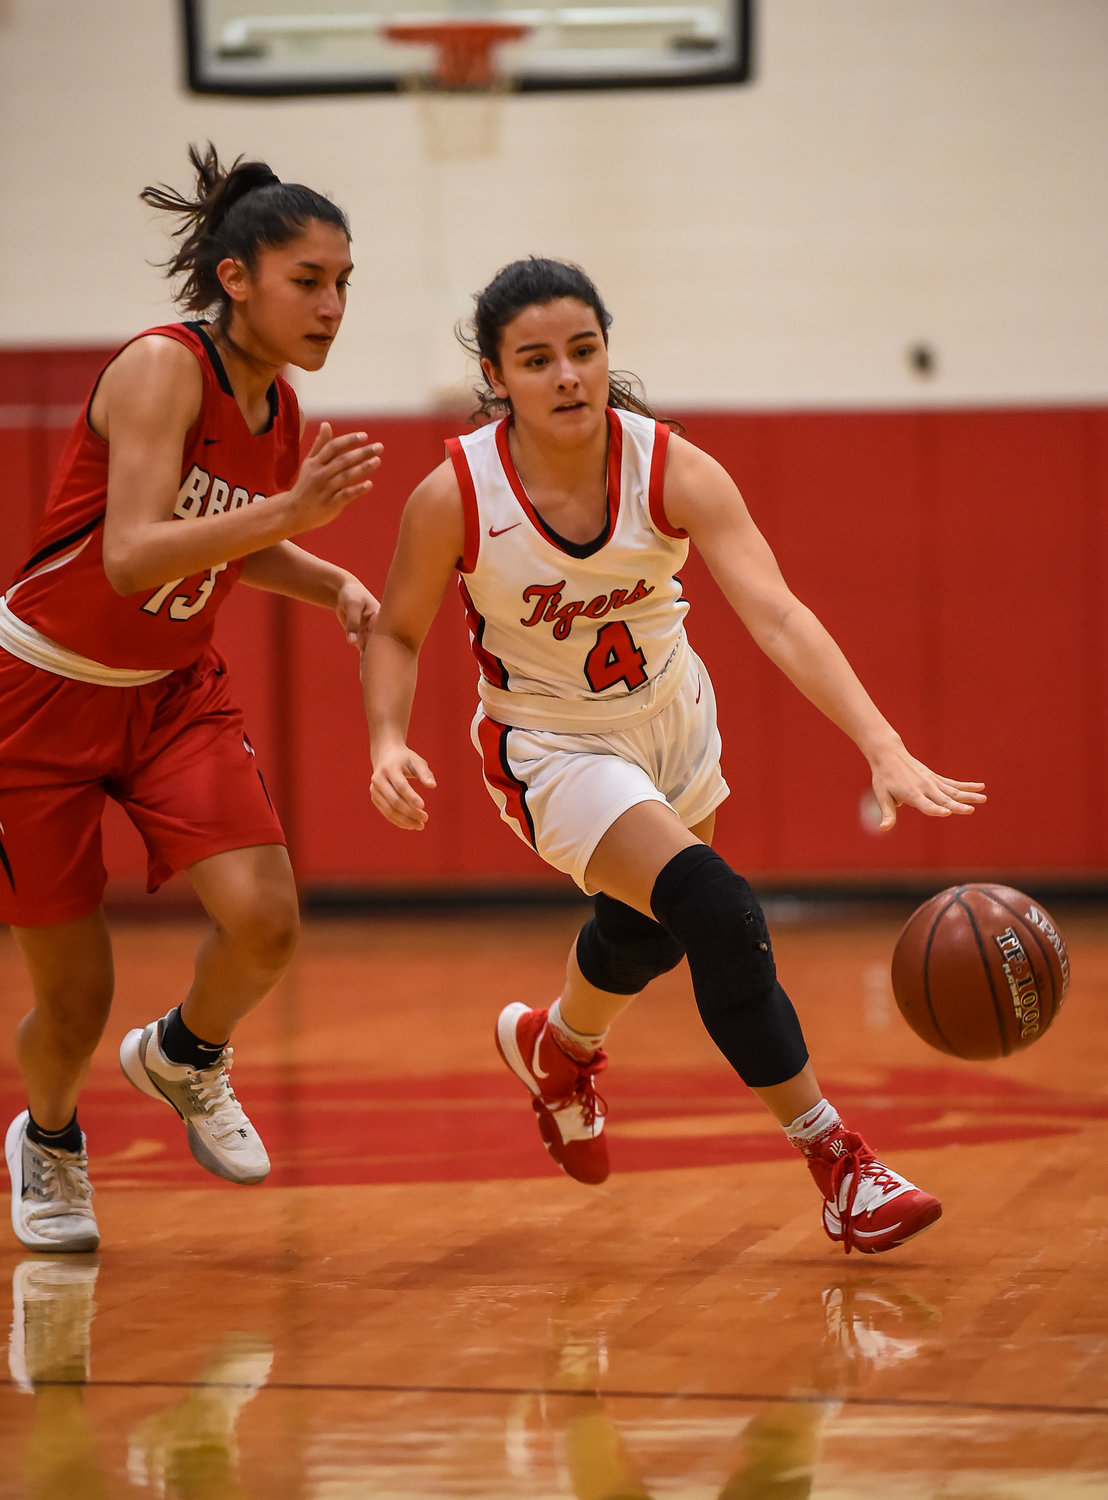 Katy Tx. Dec. 10, 2019: Katy's Sasha Fernandez (4) brings the ball up court during a non-district basketball game between Katy Tigers and Clear Brook Wolverines at Katy HS.  (Photo by Mark Goodman / Katy Times)